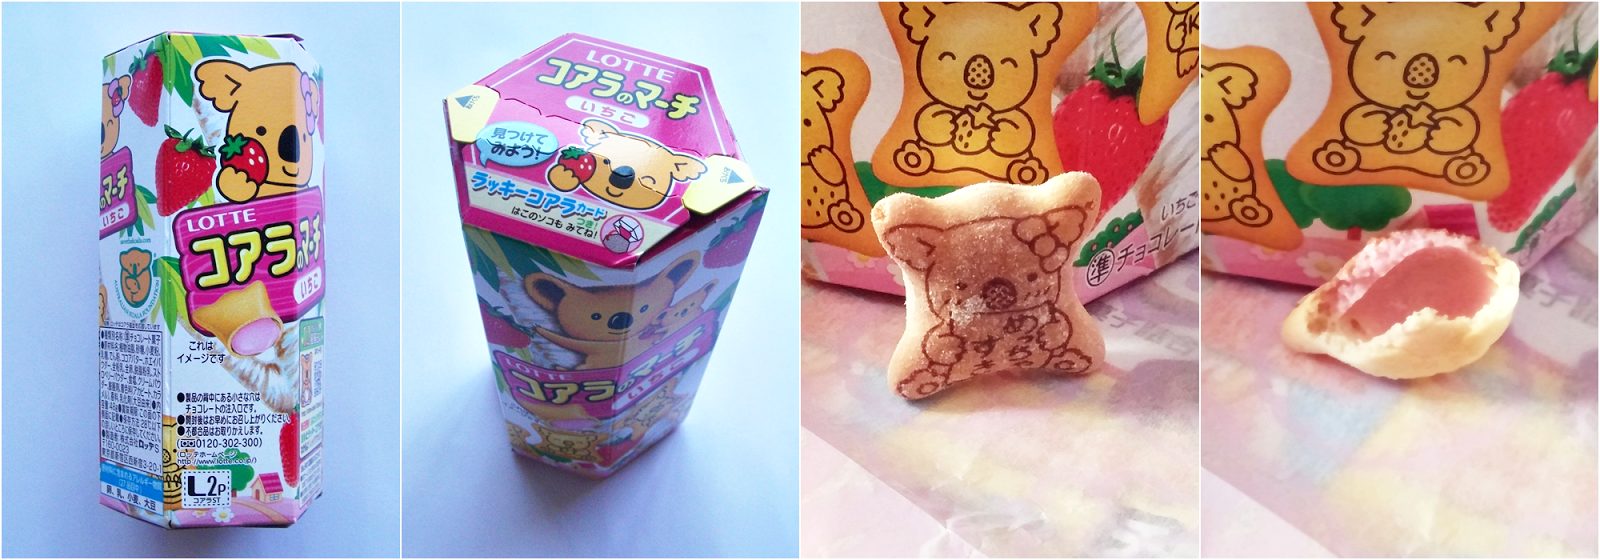 Lotte Koala March Strawberry Biscuits